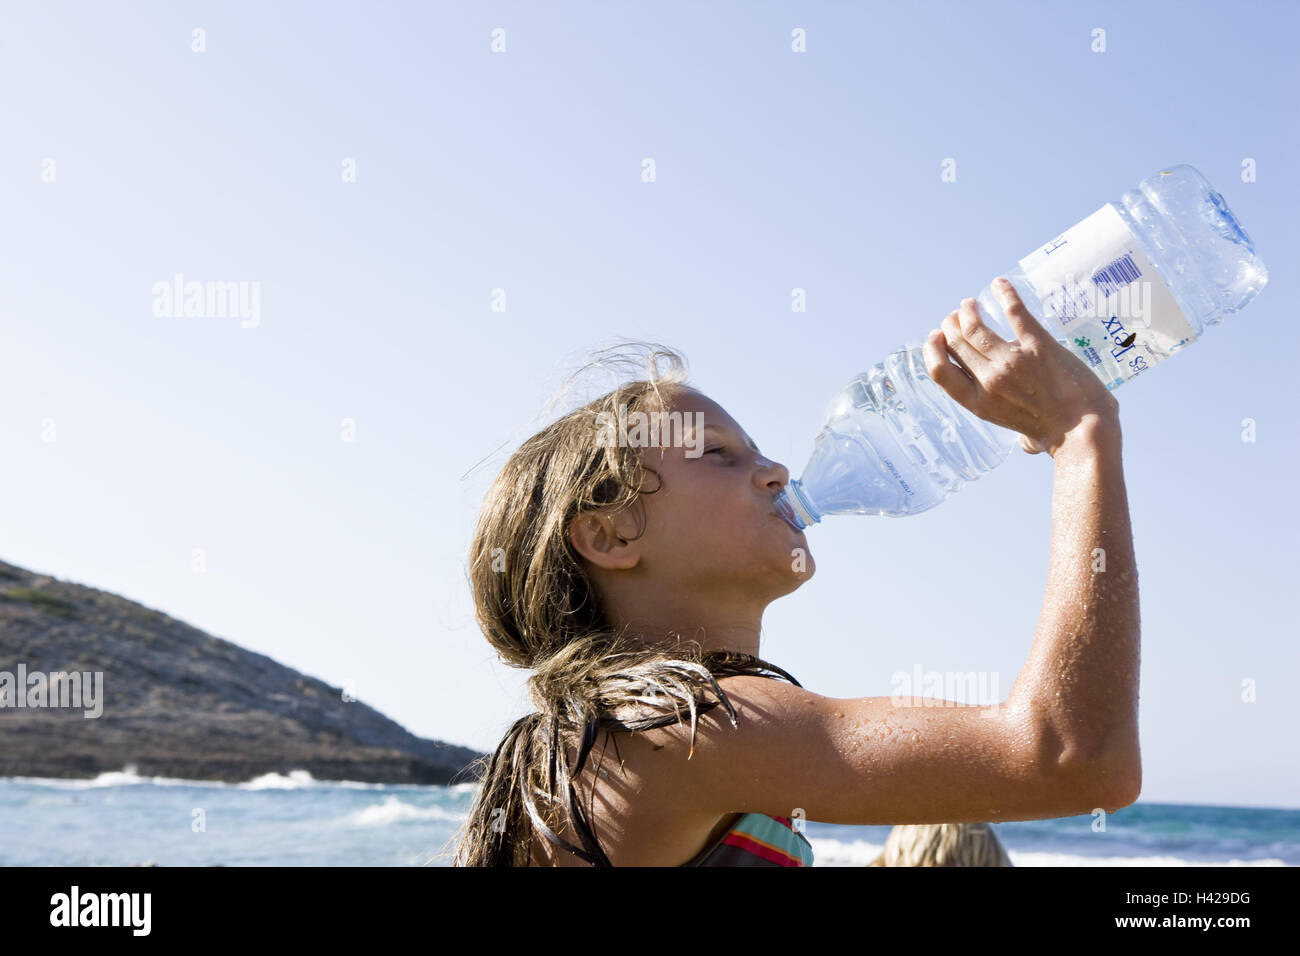 Beach, girl, thirsty, water Bottle, drink, tread, side view, people, children, long-haired, summer holidays, holidays, - Stock Image